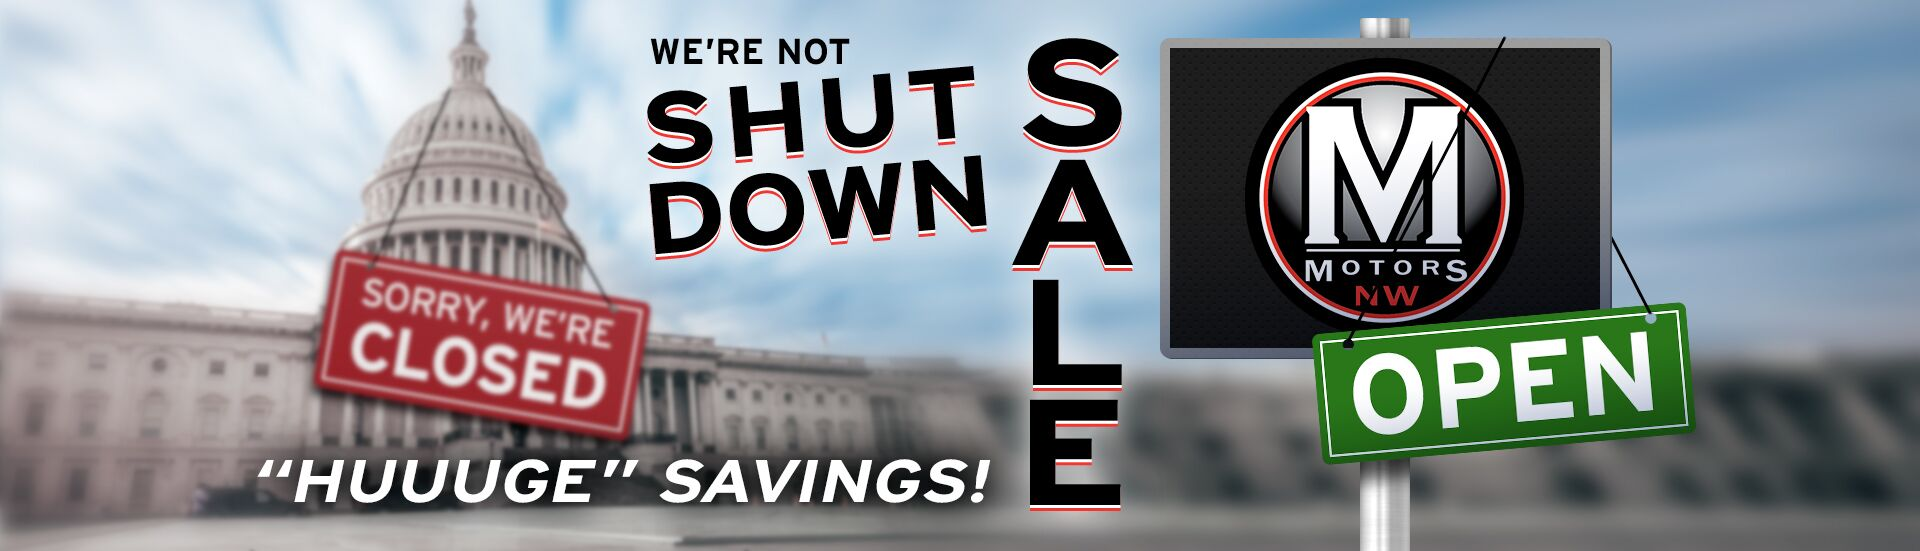 Shut Down not Sale